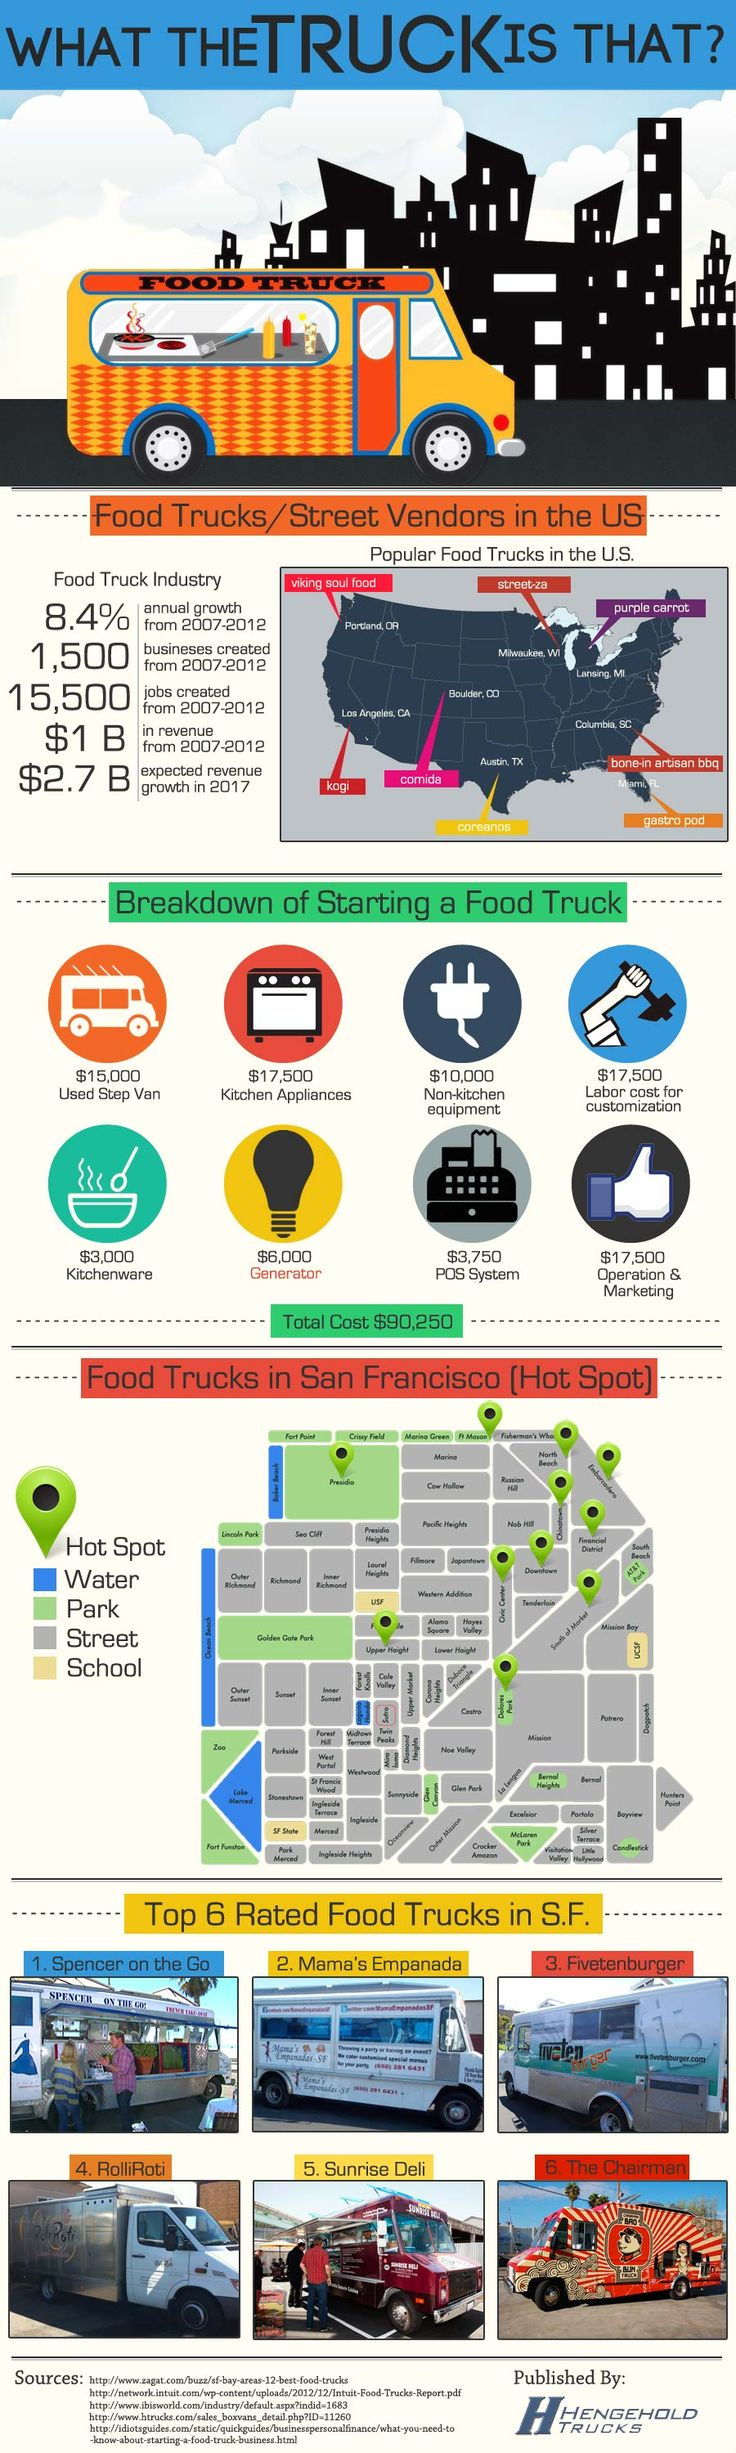 Starting Food Truck Business: Thinking or planning to start your own mobile restaurant? Not a bad idea given that food truck industry has reportedly an annual growth rate of 8,4%. Before you go see how you should hammer your truck and get an idea of how it should look like with a close look at the 6 top rated Food Trucks in... > http://infographicsmania.com/starting-food-truck-business/